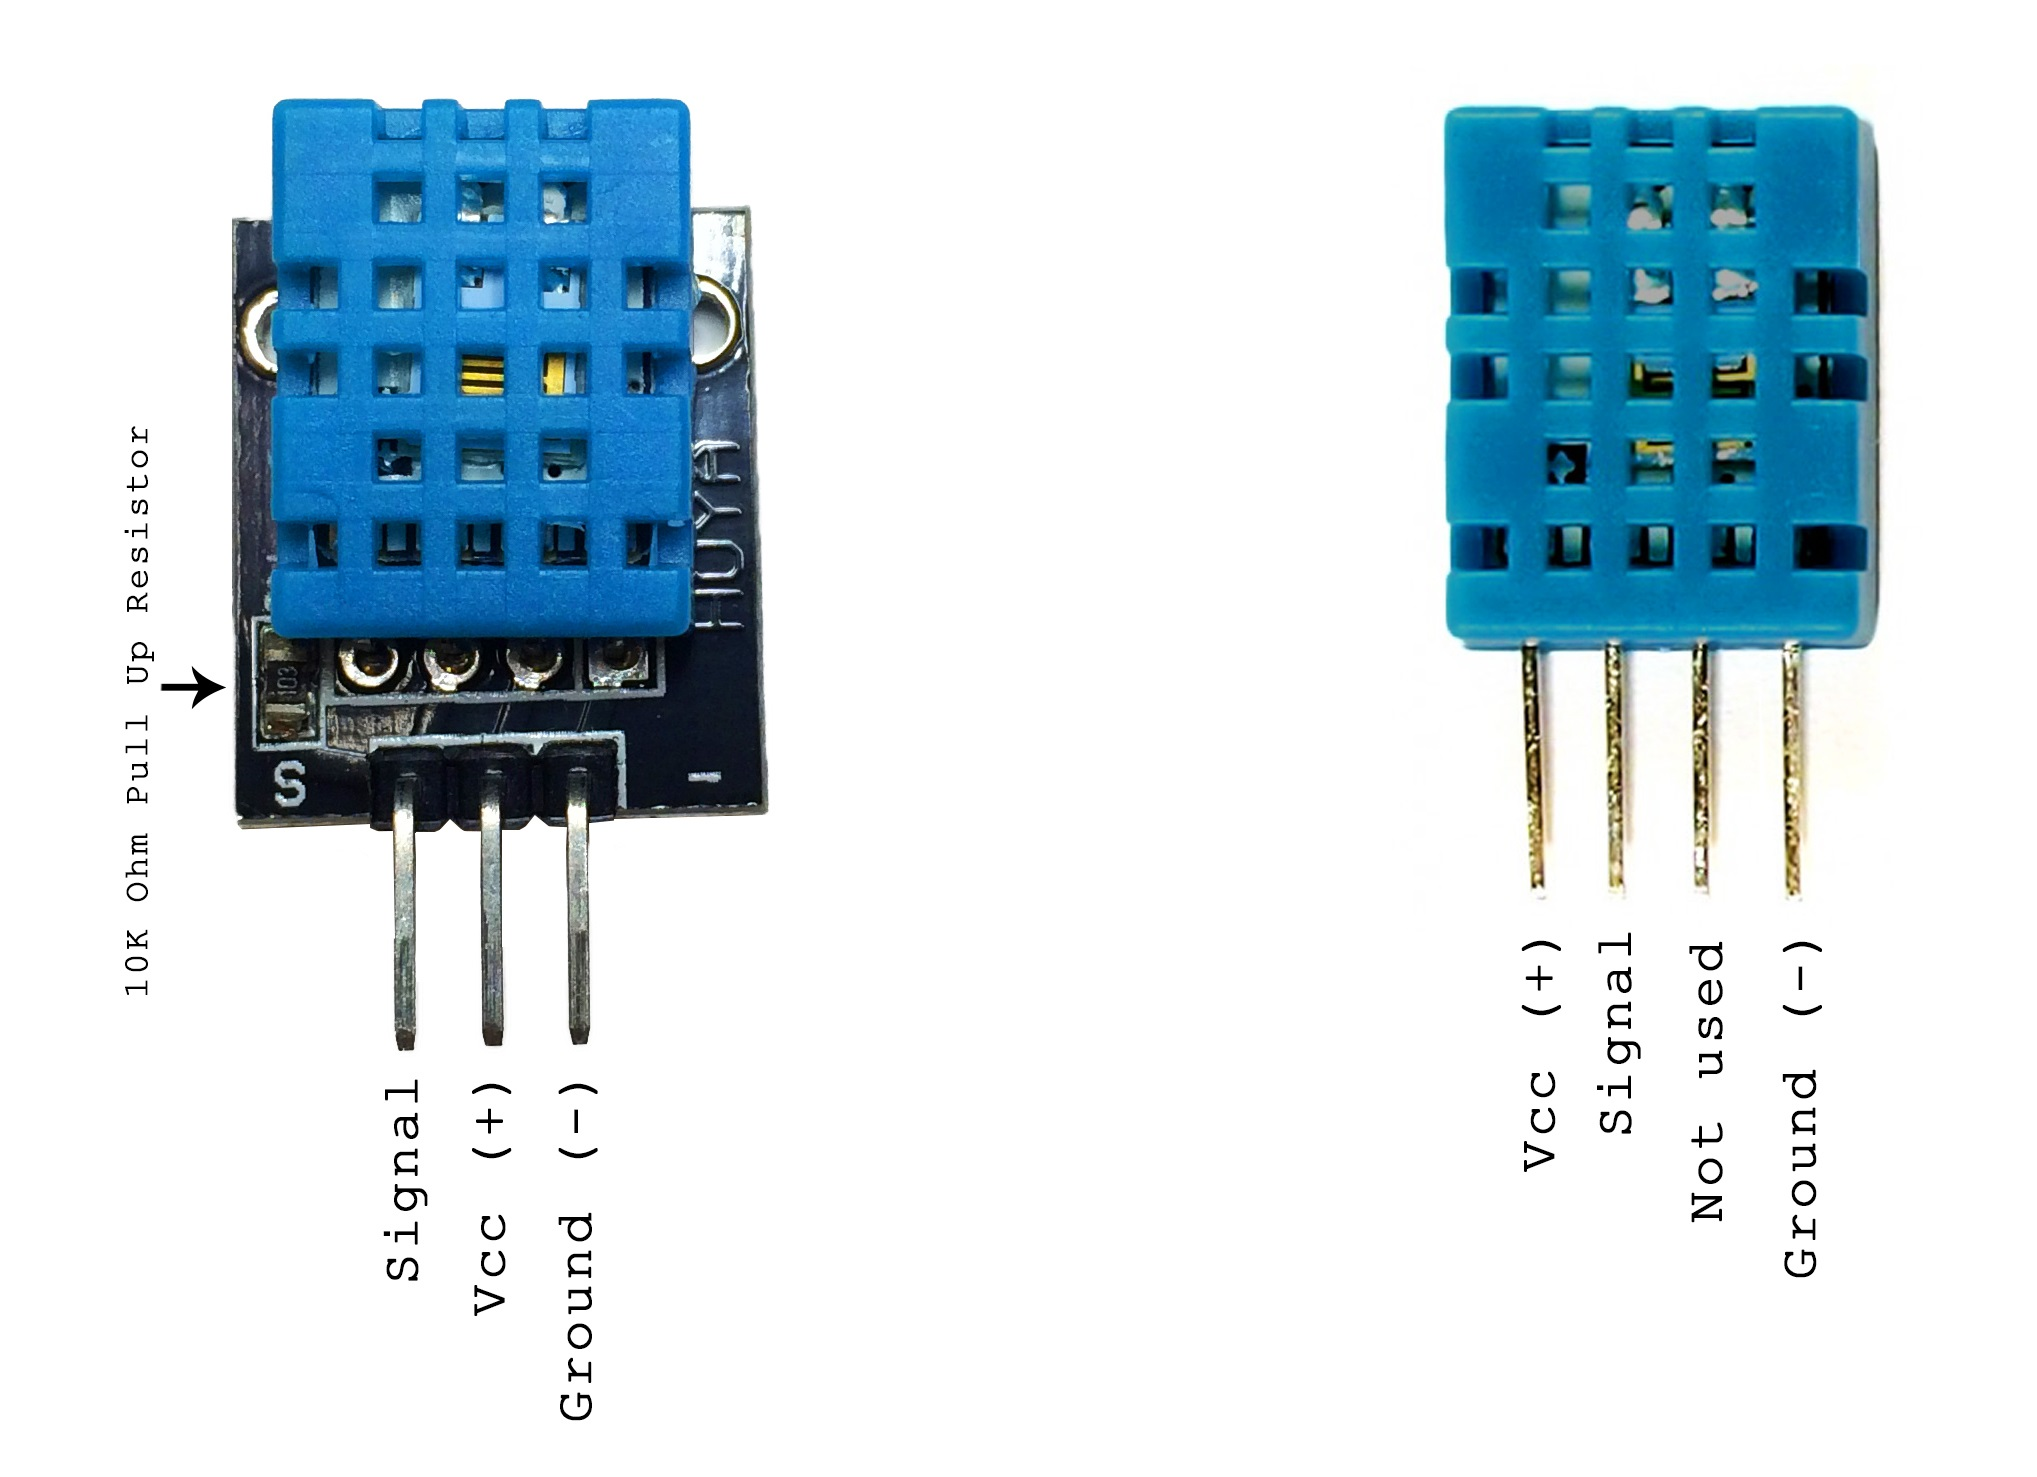 Max7219 4 Digit 7 Segment LED Display Driver Circuit likewise Is Max232 Is Needed together with Software Para Diseno De Circuitos Y Placas Pcb Easyeda together with Hobby Servo Tutorial in addition Encoders And Decoders Truth Tables. on arduino on circuit